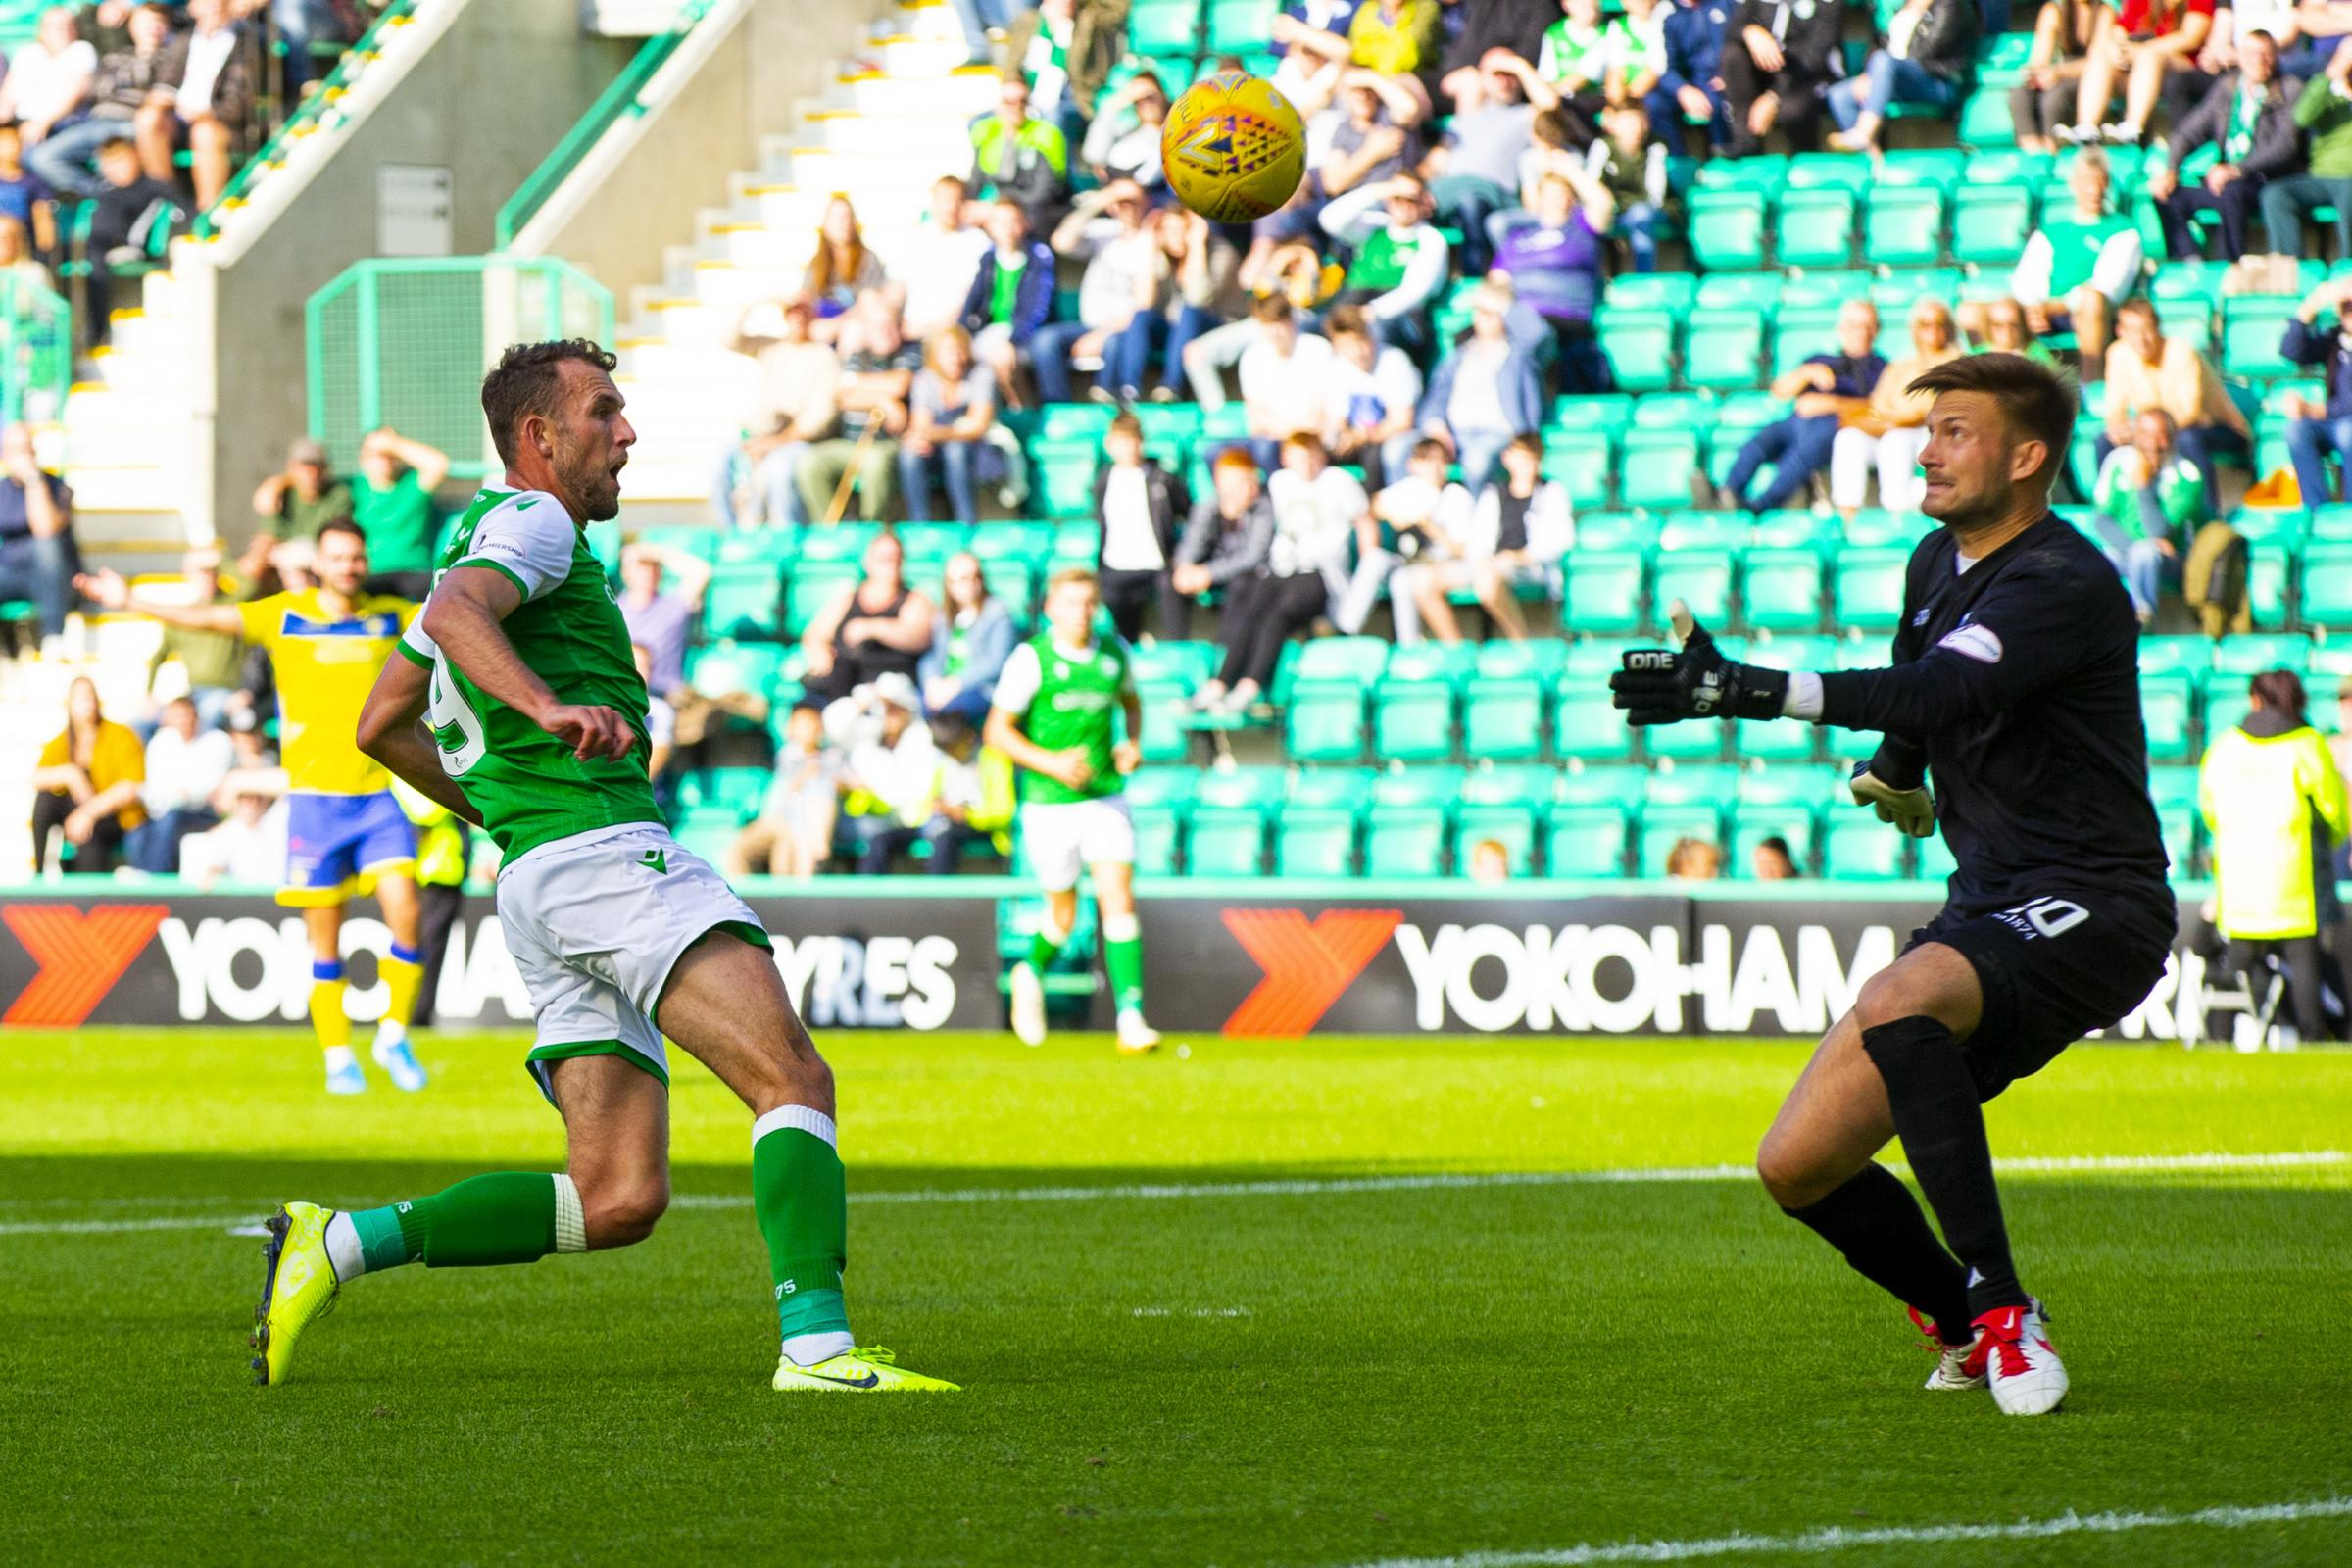 Hibernian 5 Morton 3: MacKinnon set to complain to Scottish FA after drama on and off the pitch